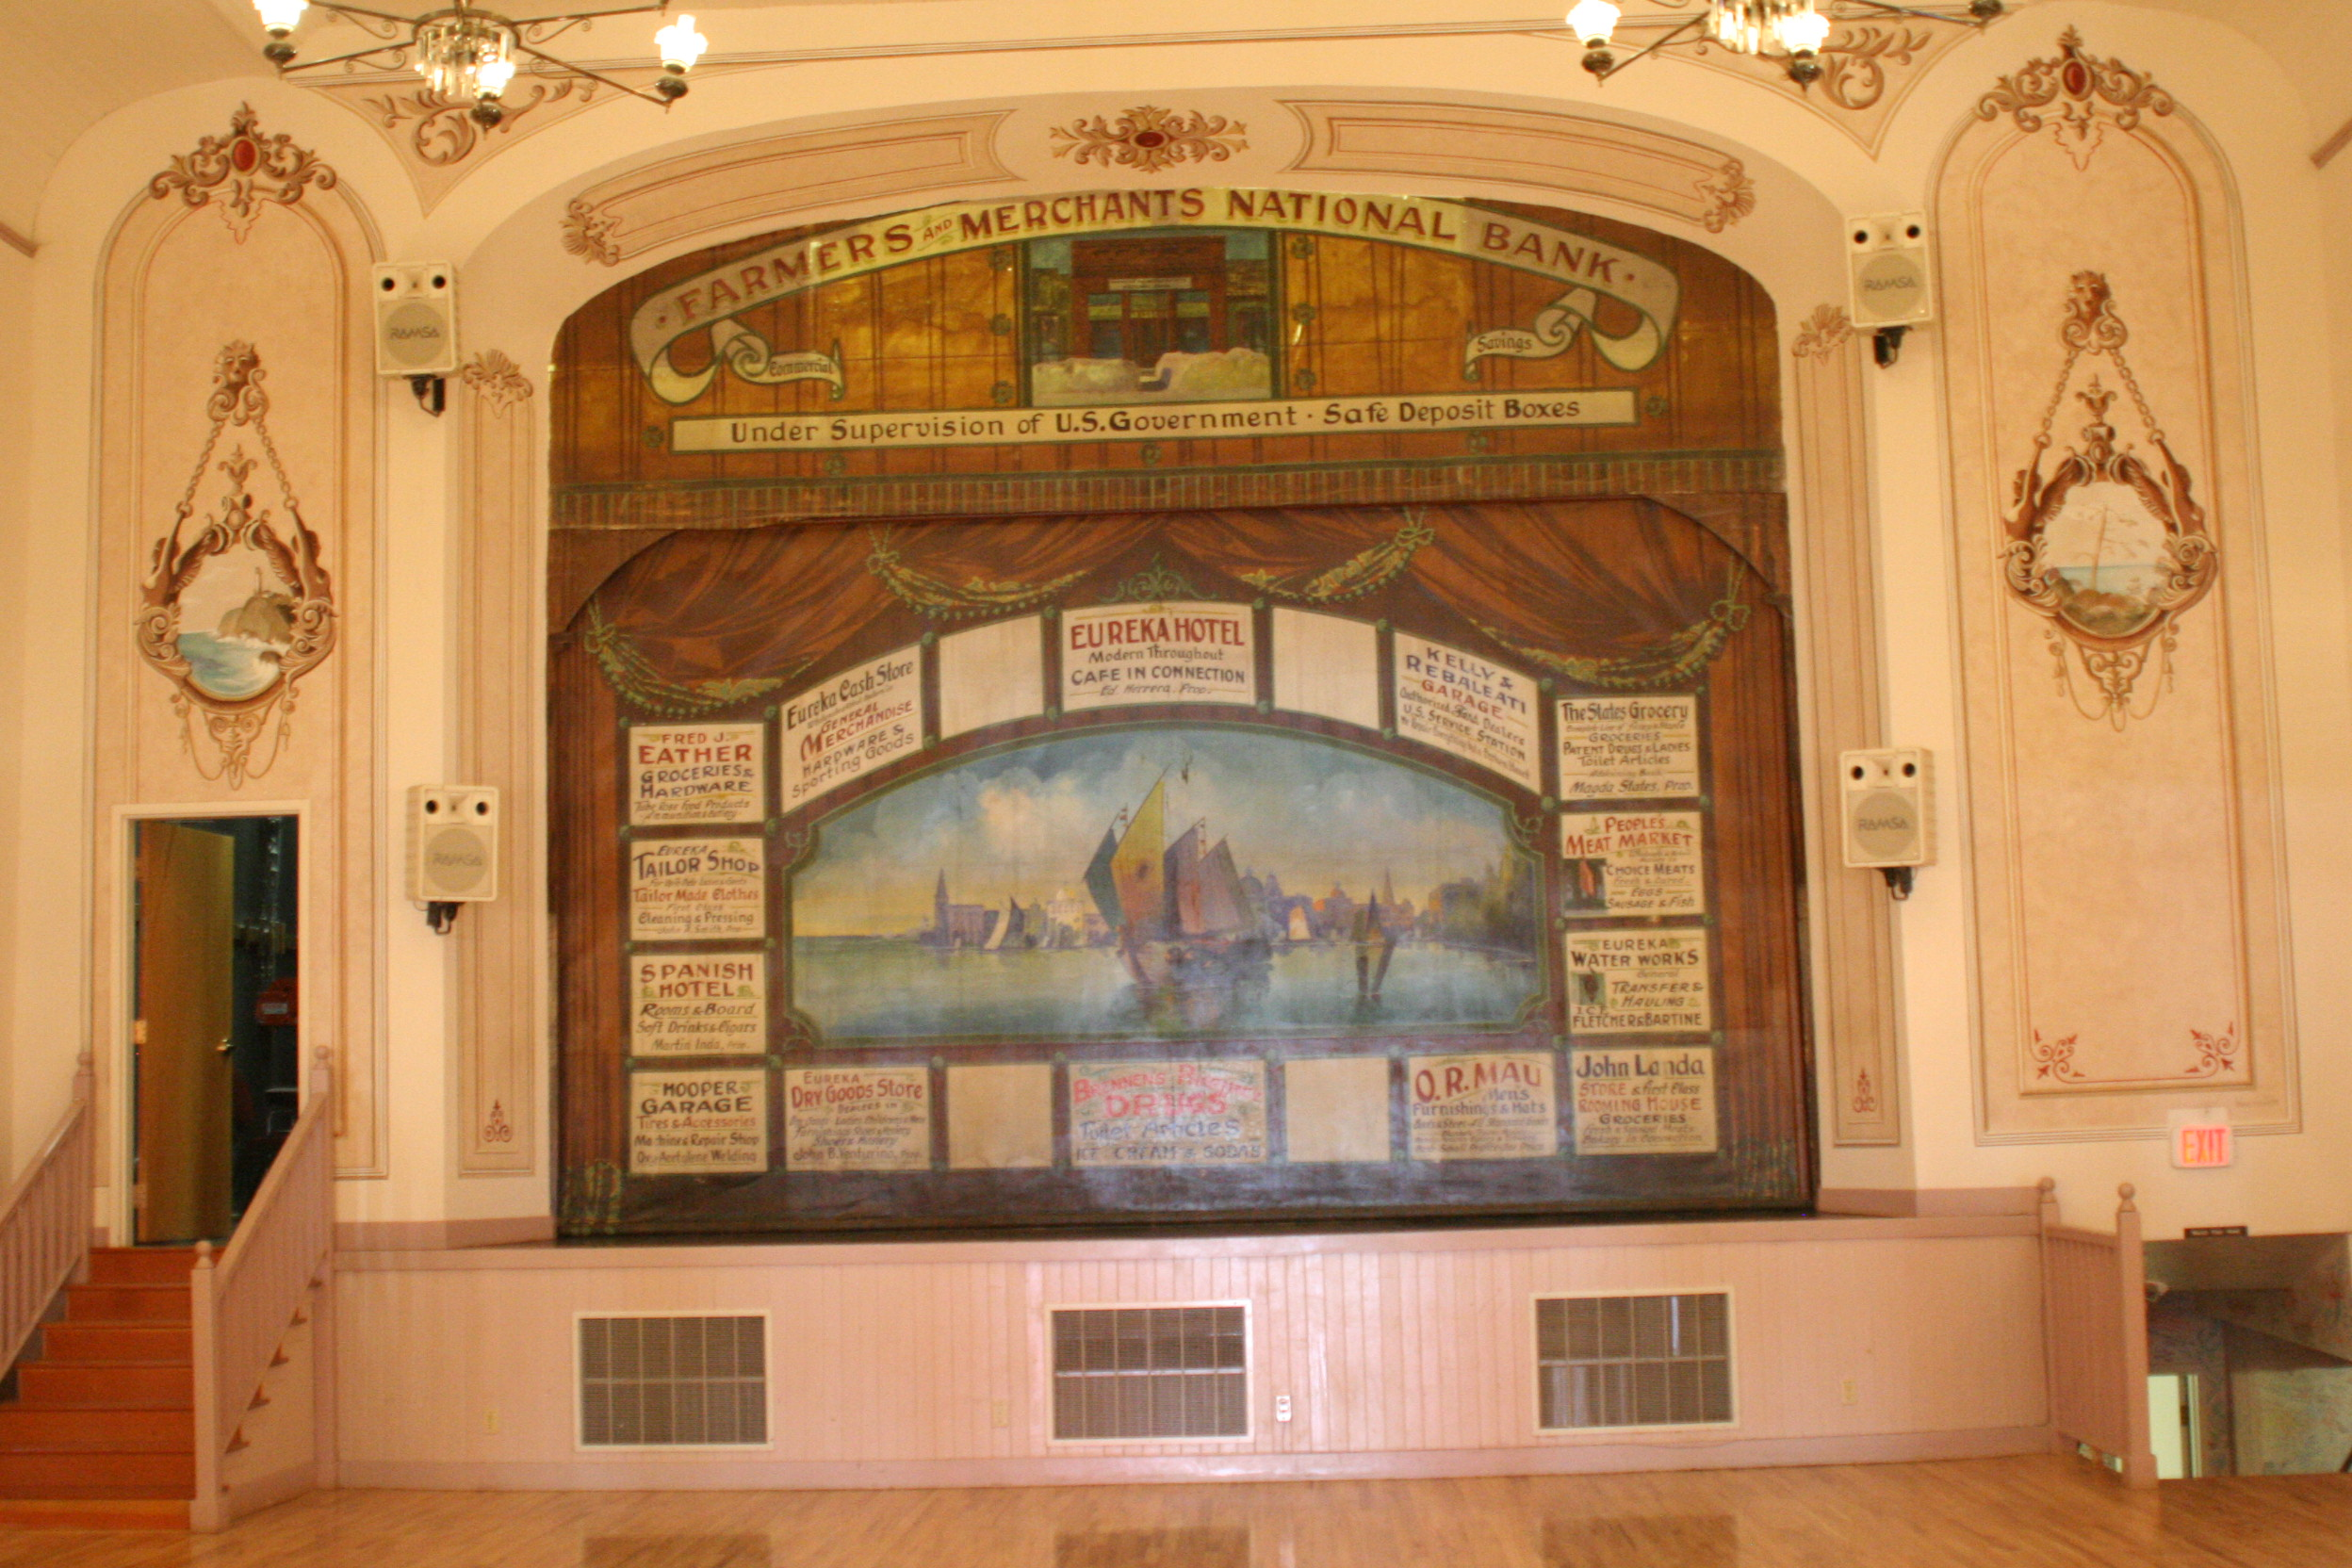 https://joannevdotcom.files.wordpress.com/2012/06/097-eureka-ut-old-opera-house.jpg